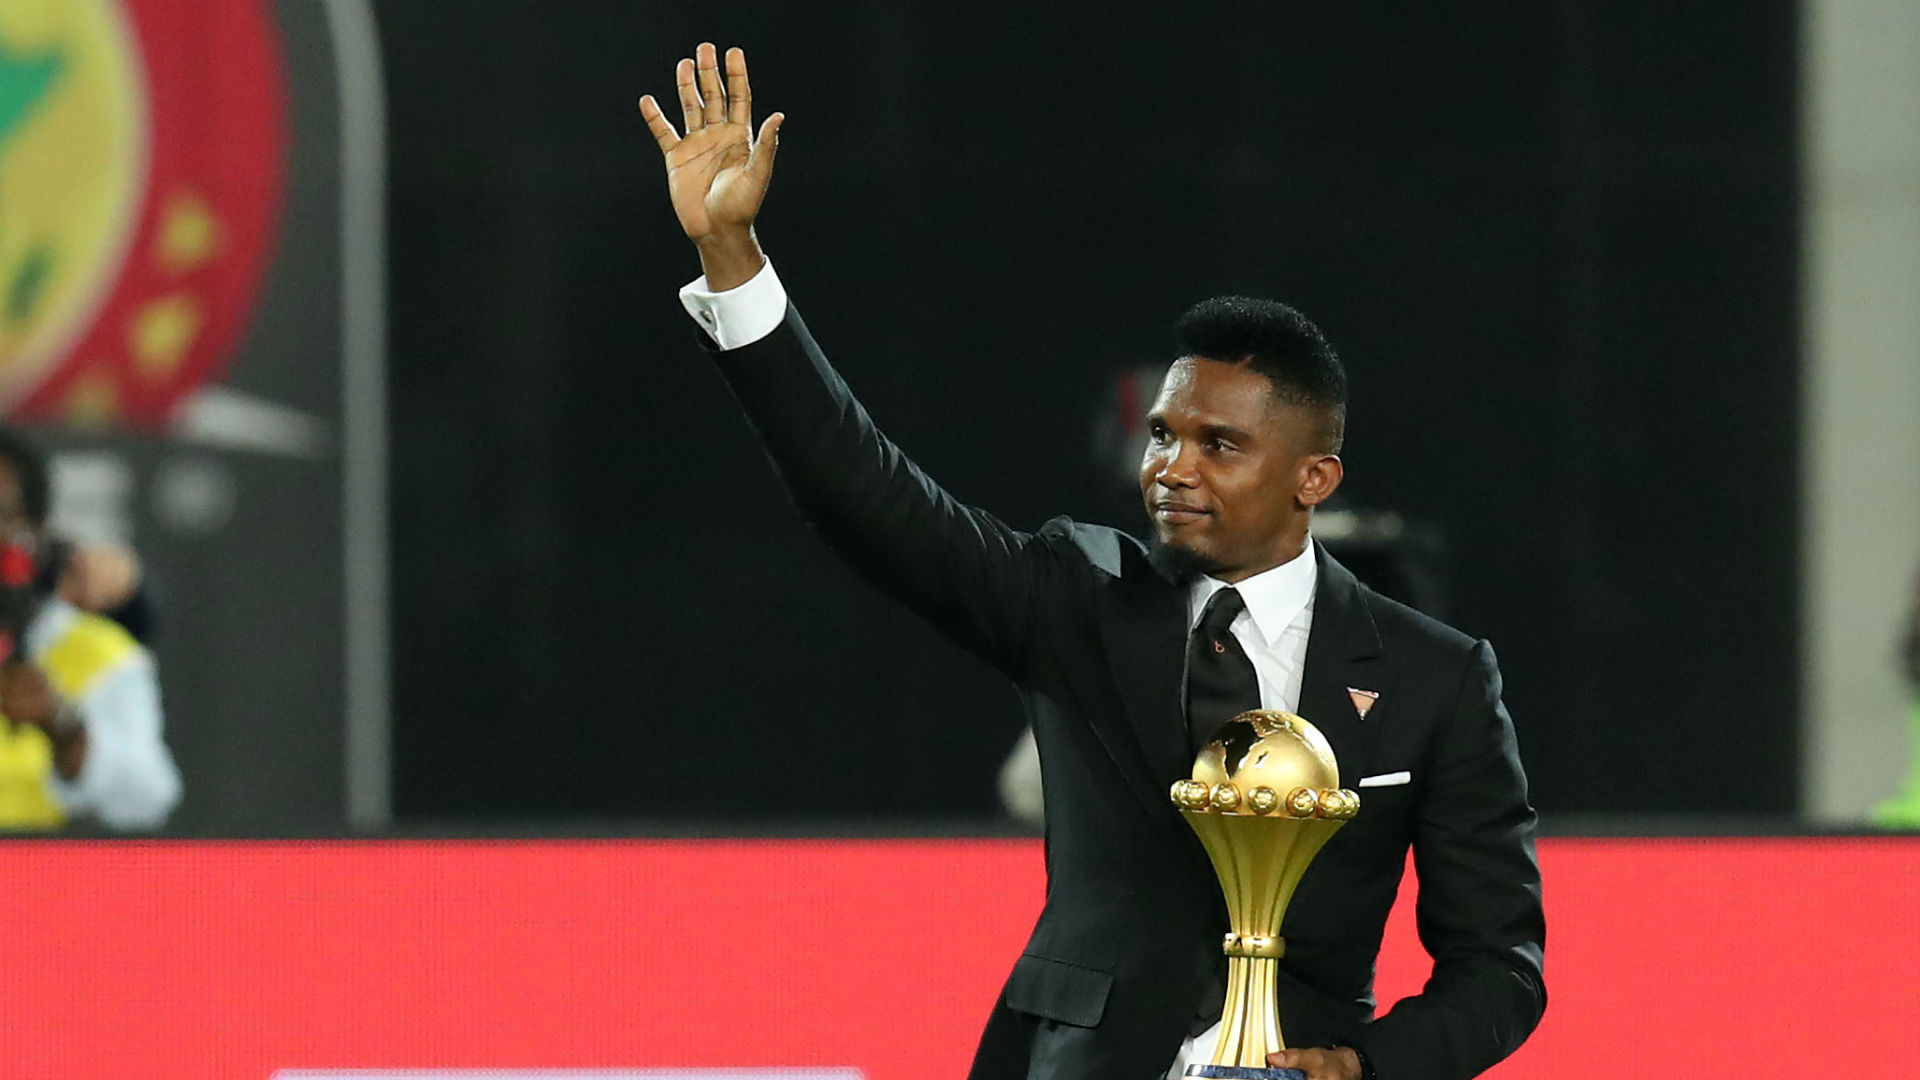 FEATURE: AFCON Records – No one scores like Cameroon legend Samuel Eto'o